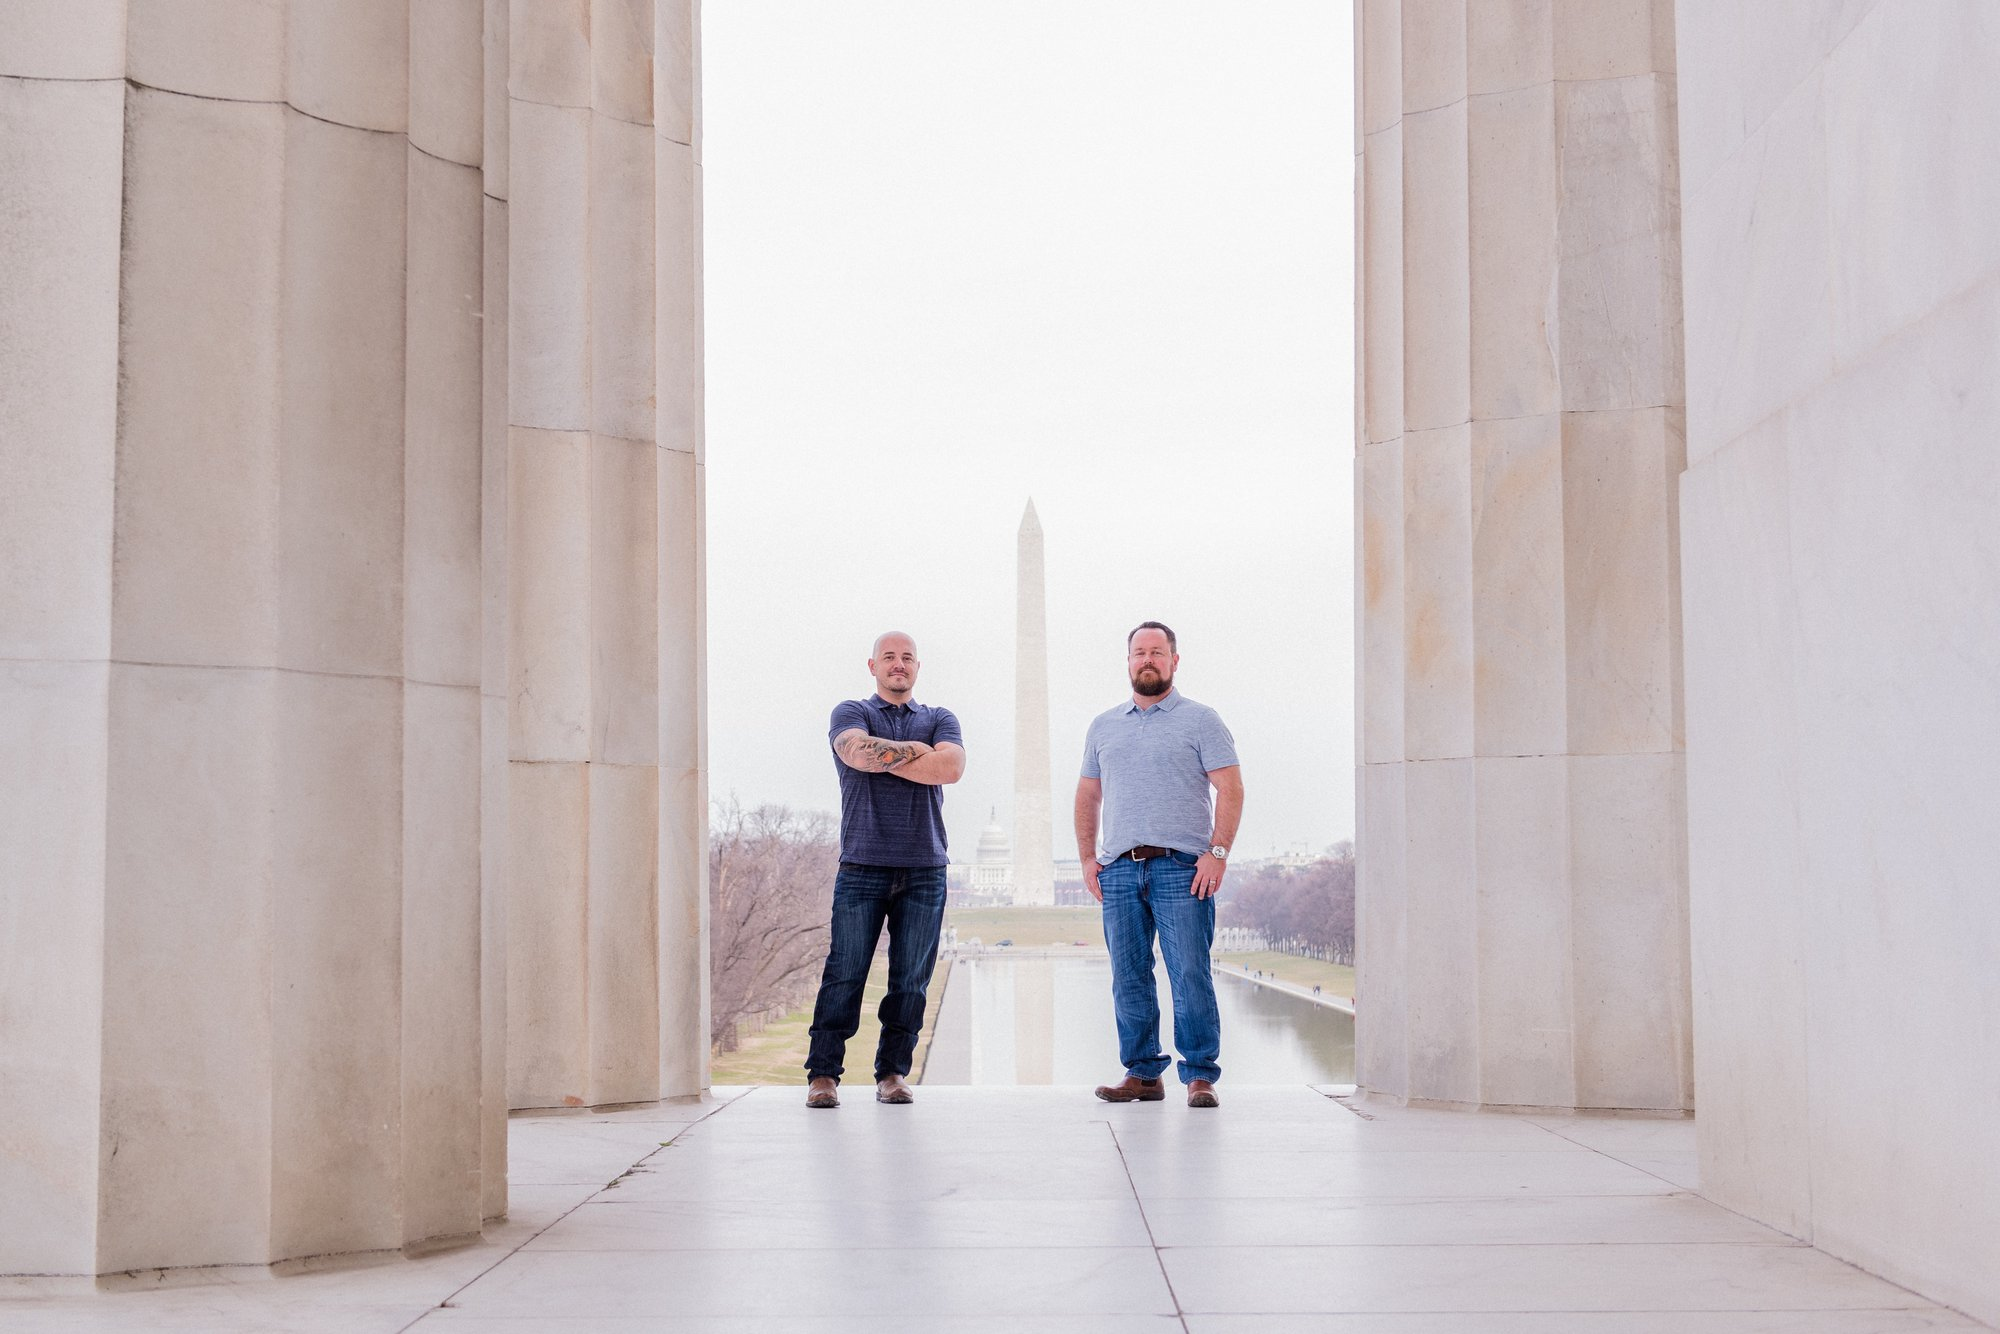 Washington, DC Same Sex Engagement Shoot at the Lincoln Memorial with the Washington Monument in the background.